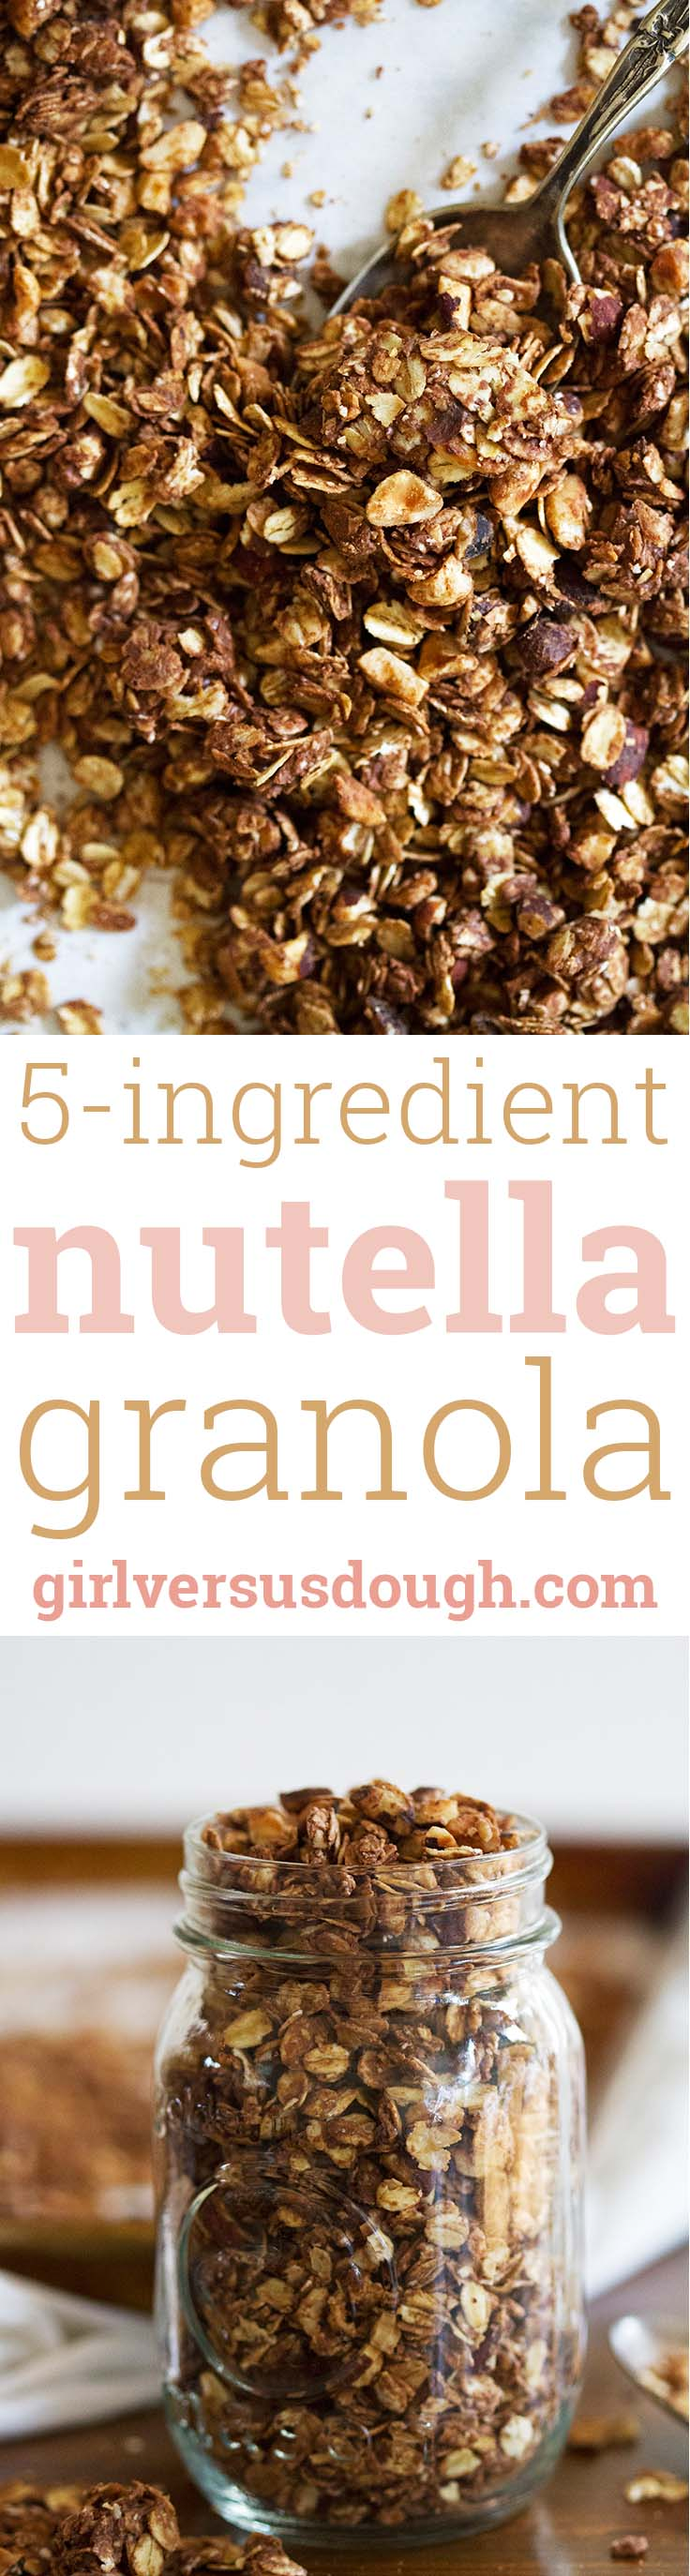 5 Ingredient Nutella Granola -- Sweet, salty, crunchy and cluster-y, you'll want to grab handfuls of this easy and delicious granola again and again. girlversusdough.com @girlversusdough